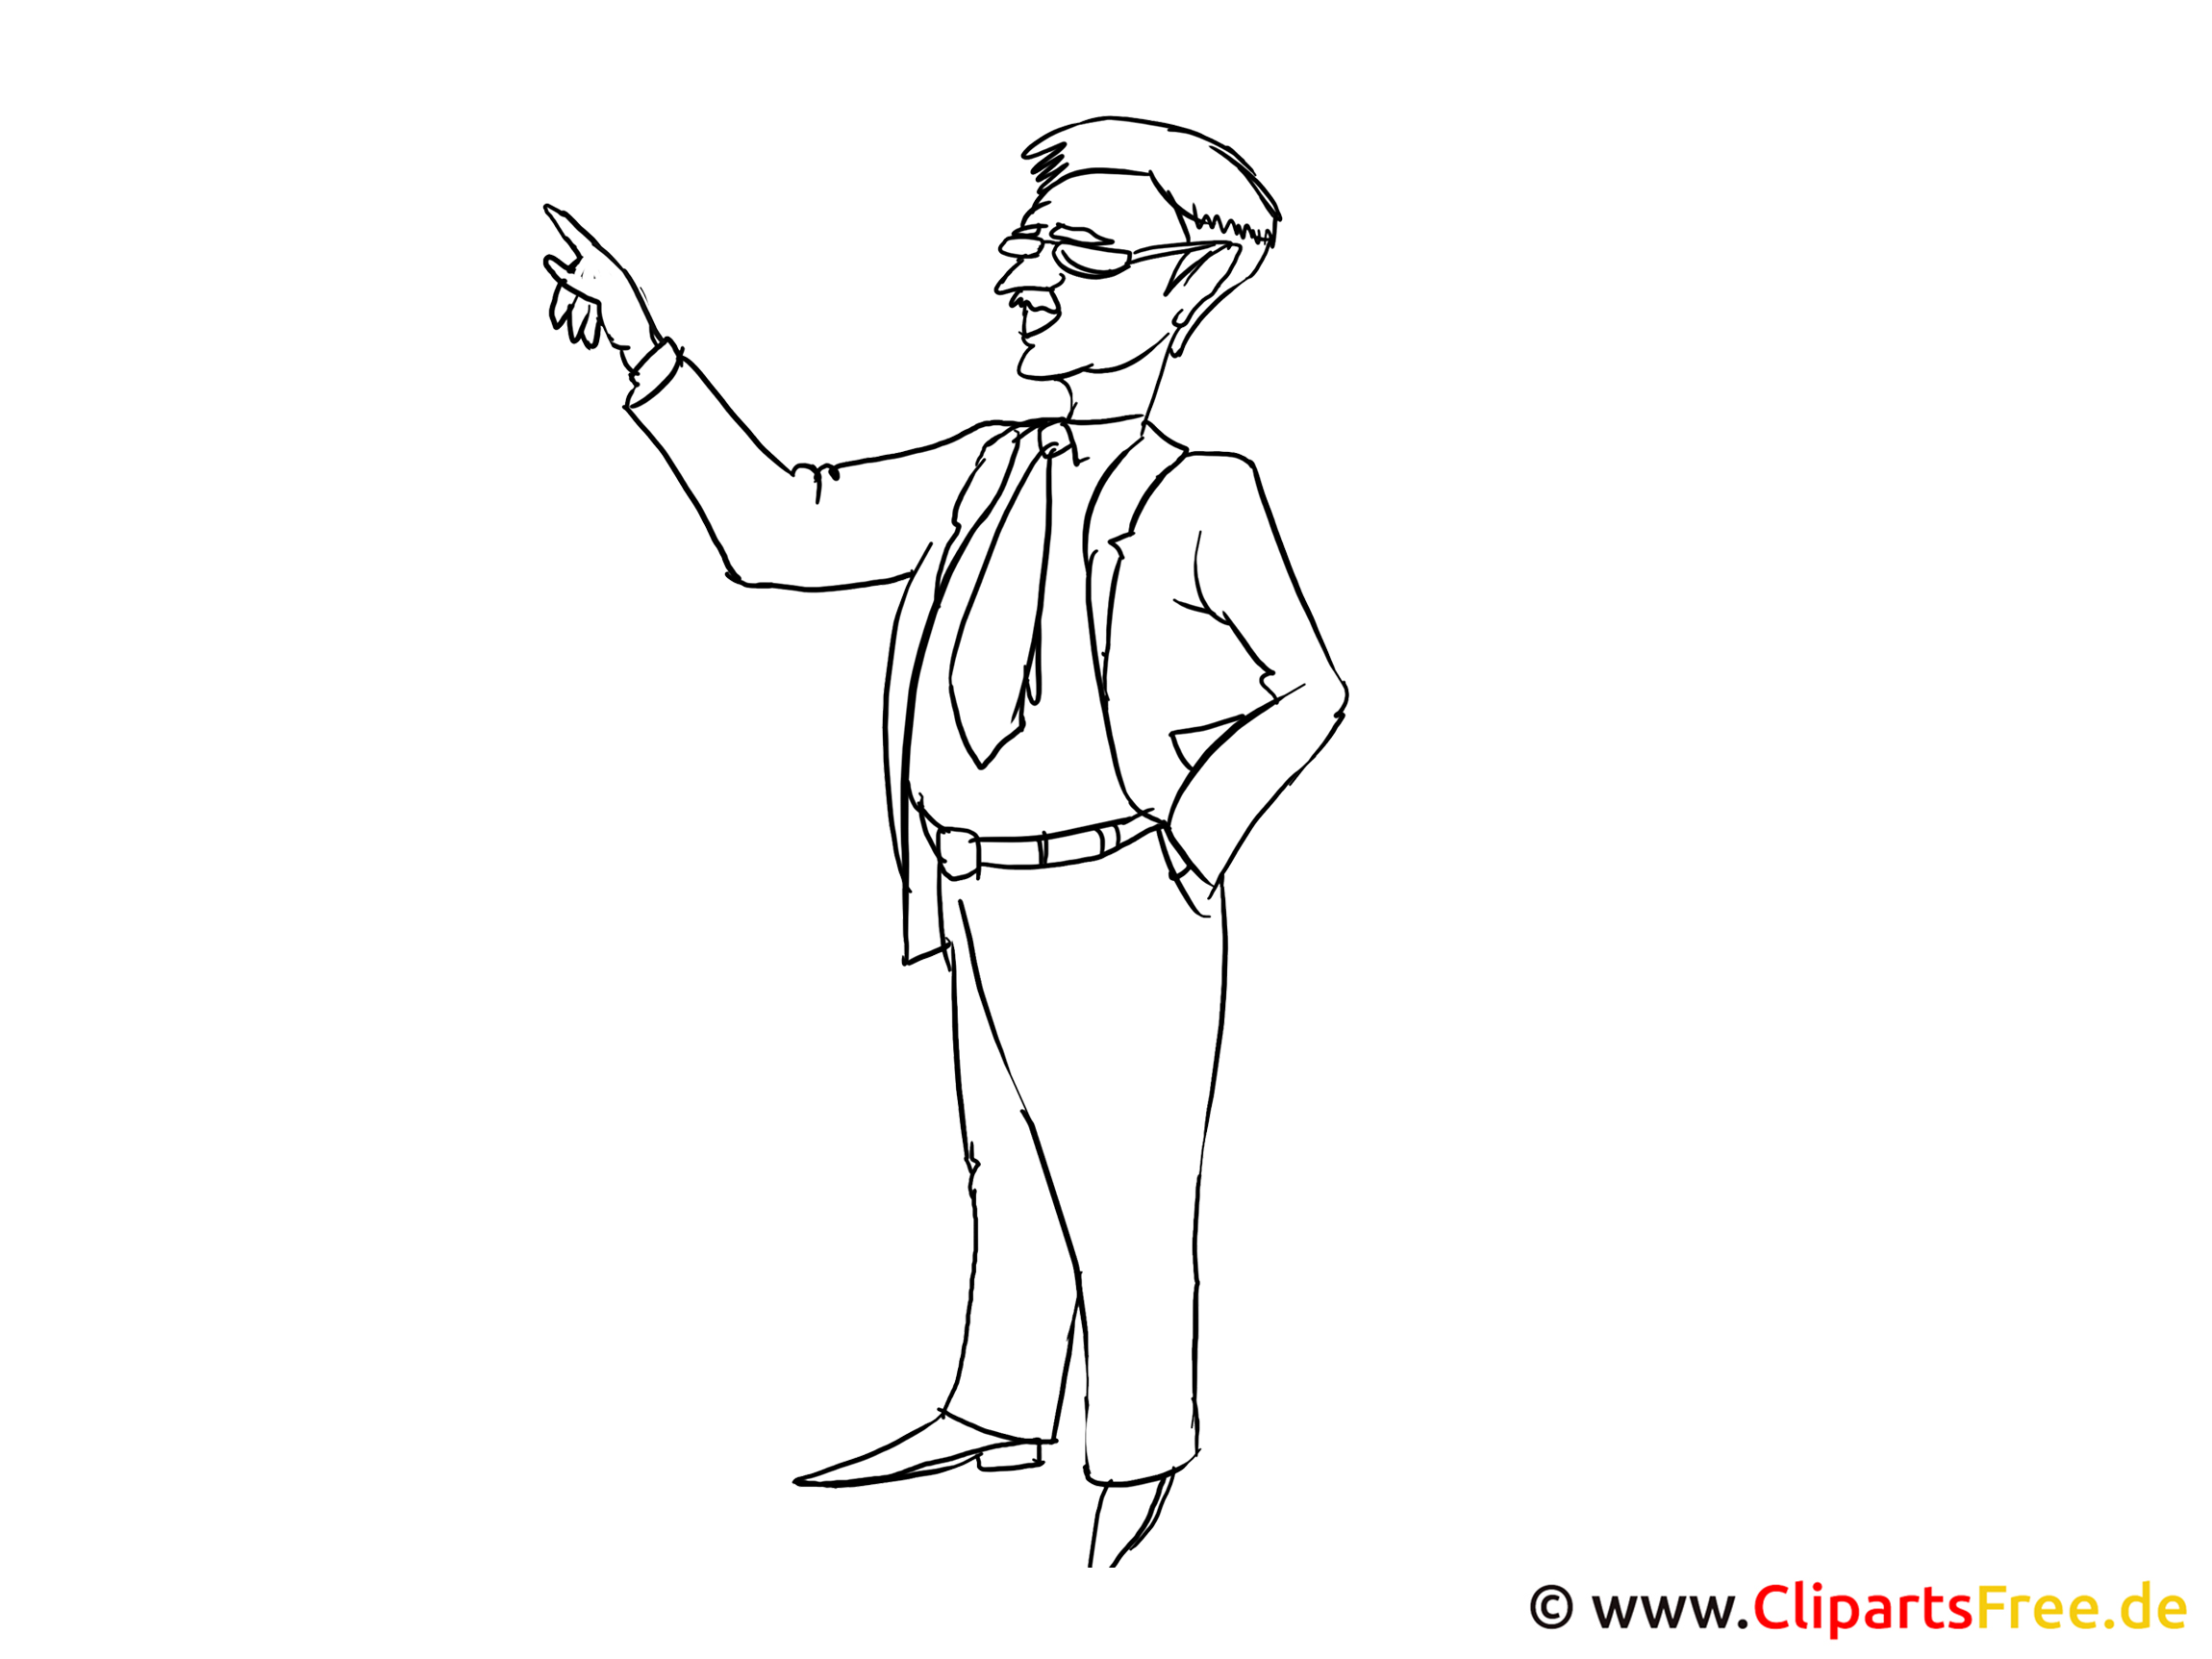 clipart kostenlos alter mann - photo #27